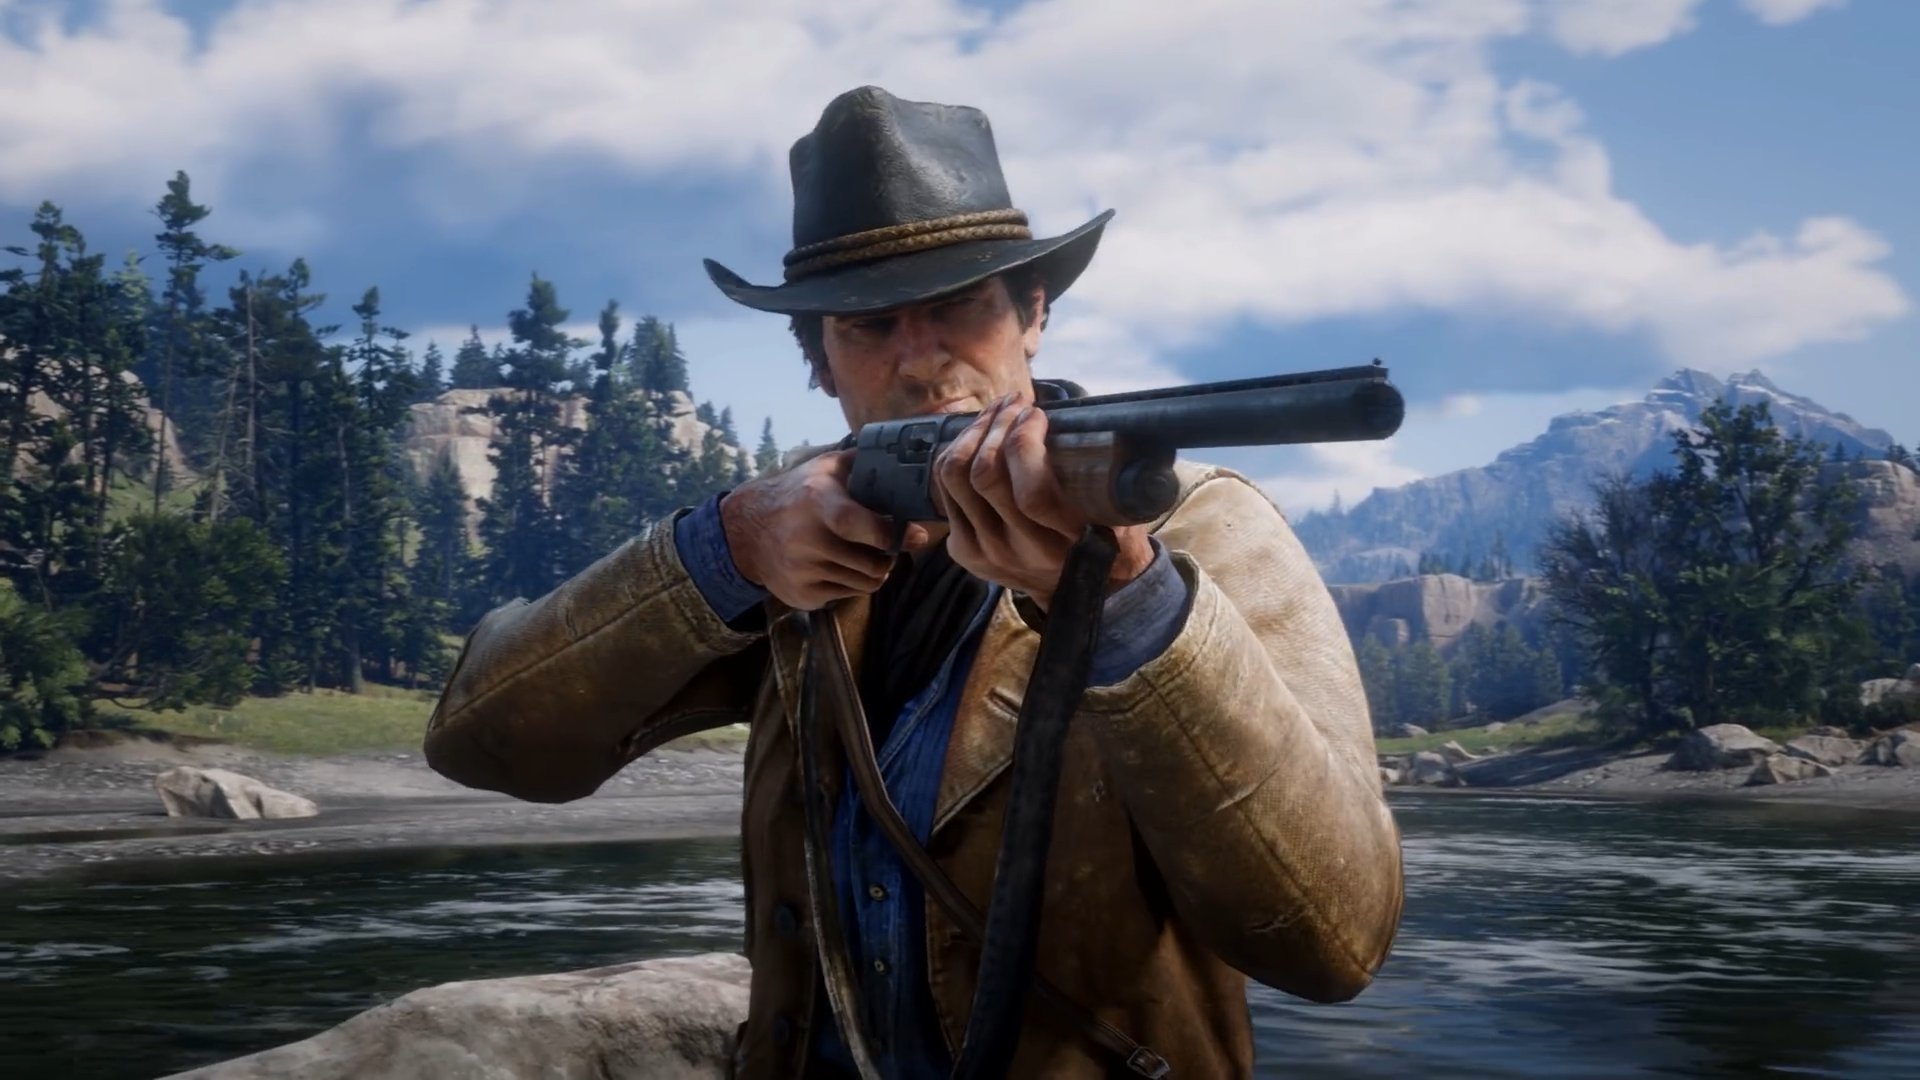 Red Dead Redemption 2 gameplay has been revealed! #RDR2 https://t.co/N7SeeCHXUu